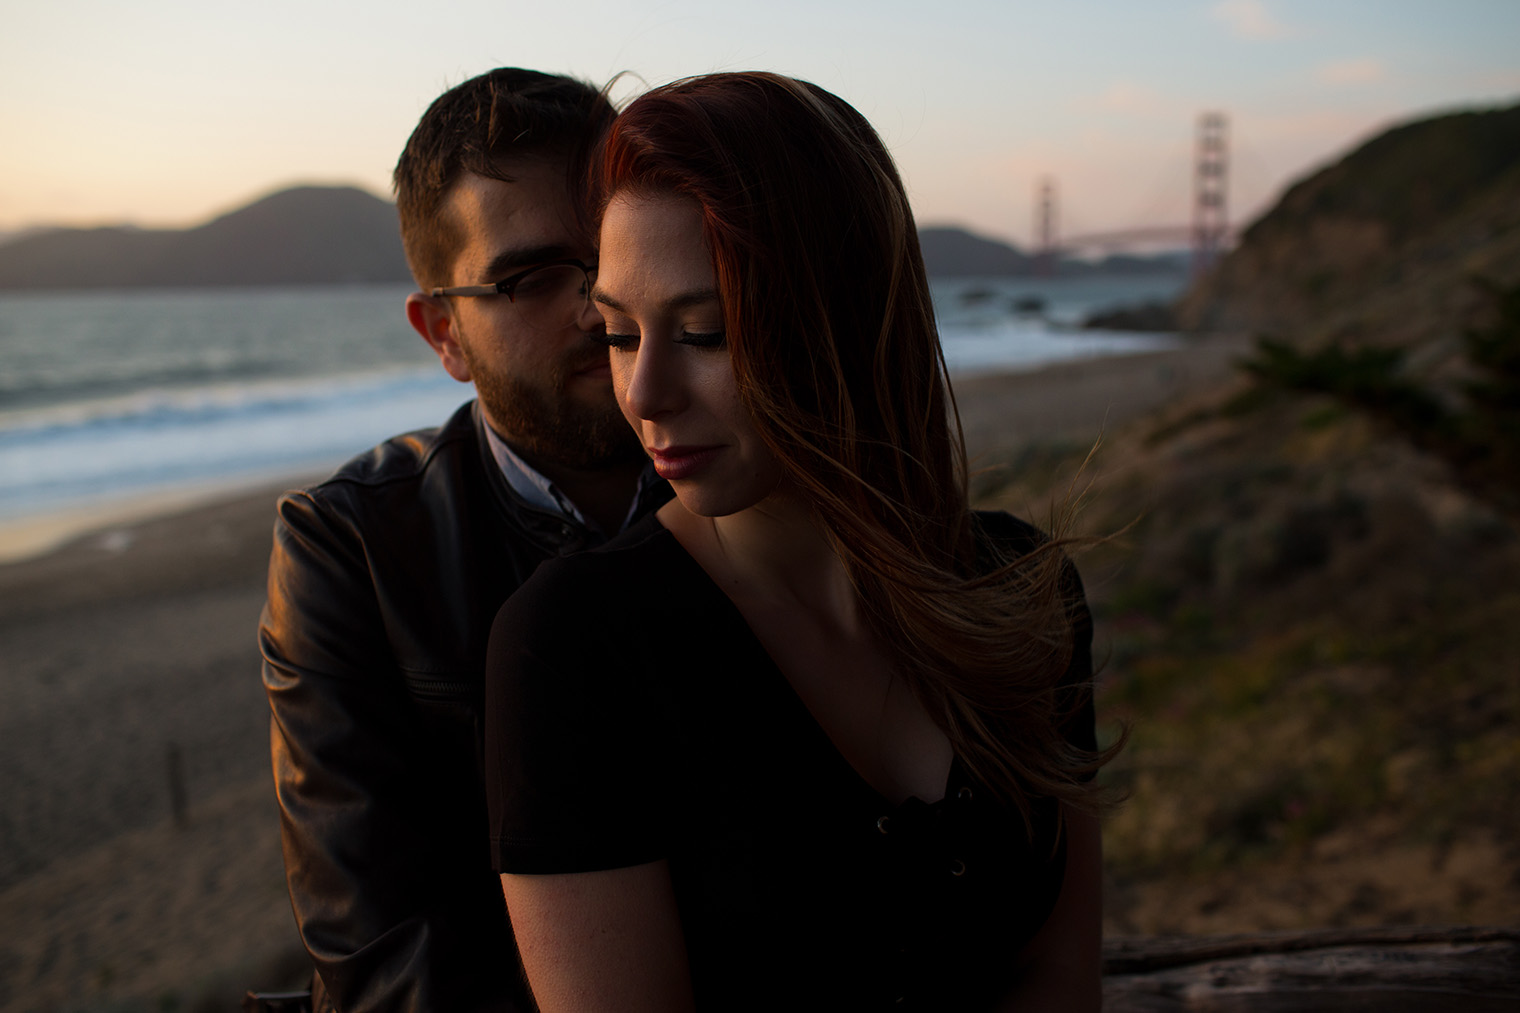 best spot for engagement photos in san francisco